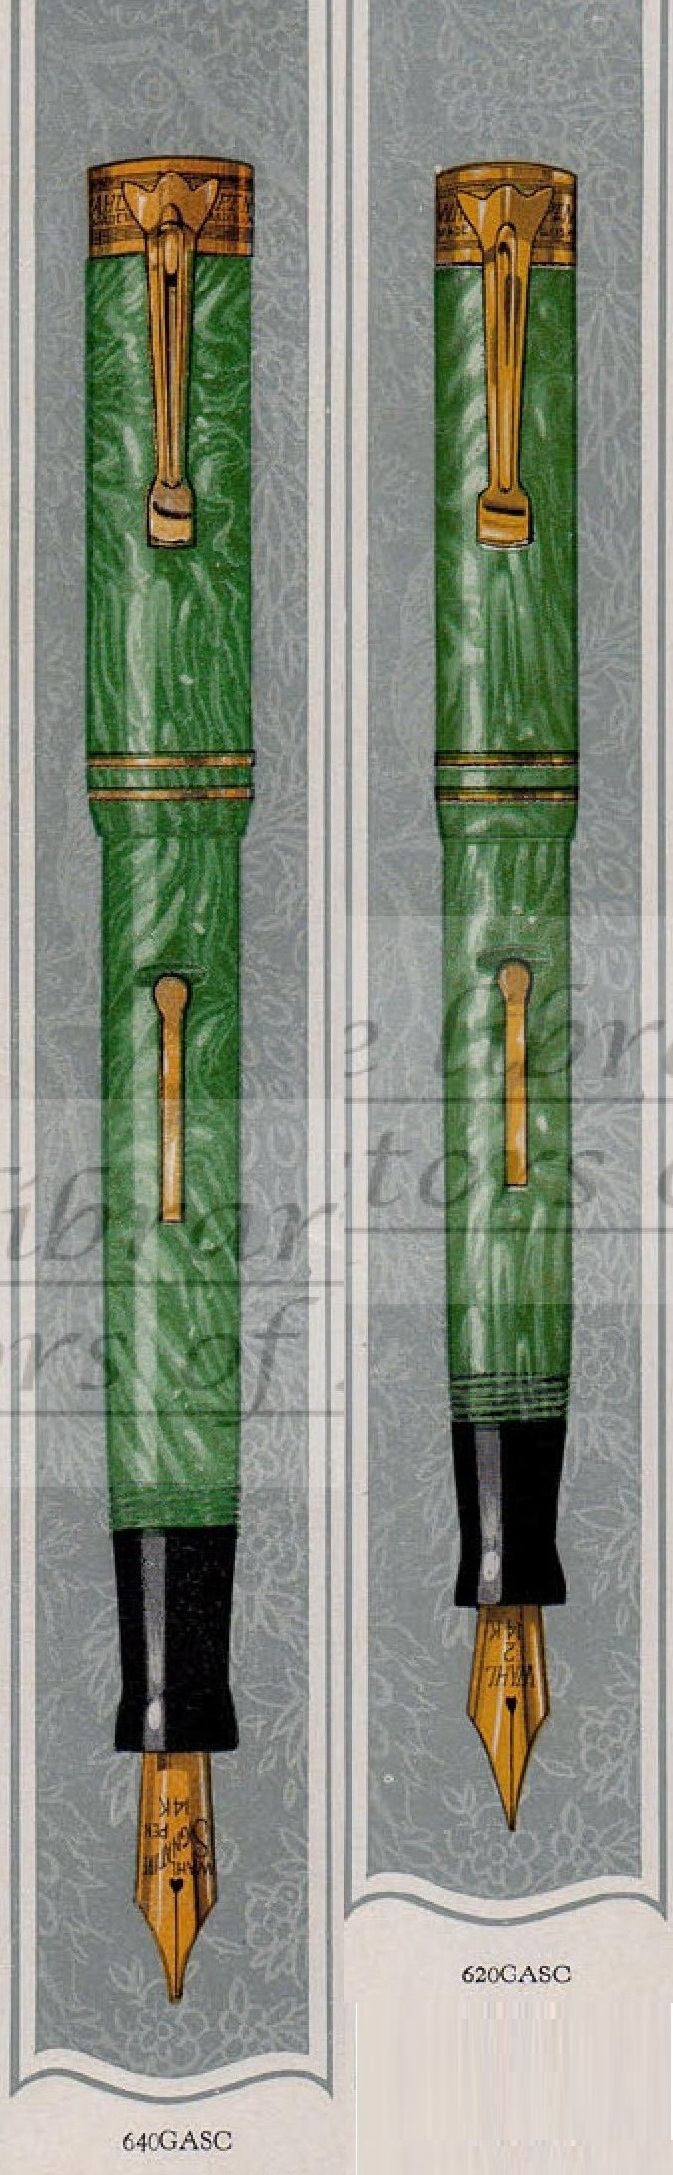 14. 1928. Wahl Eversharp 1928 catalog Green Jade SC #4 and #2 collage.jpg